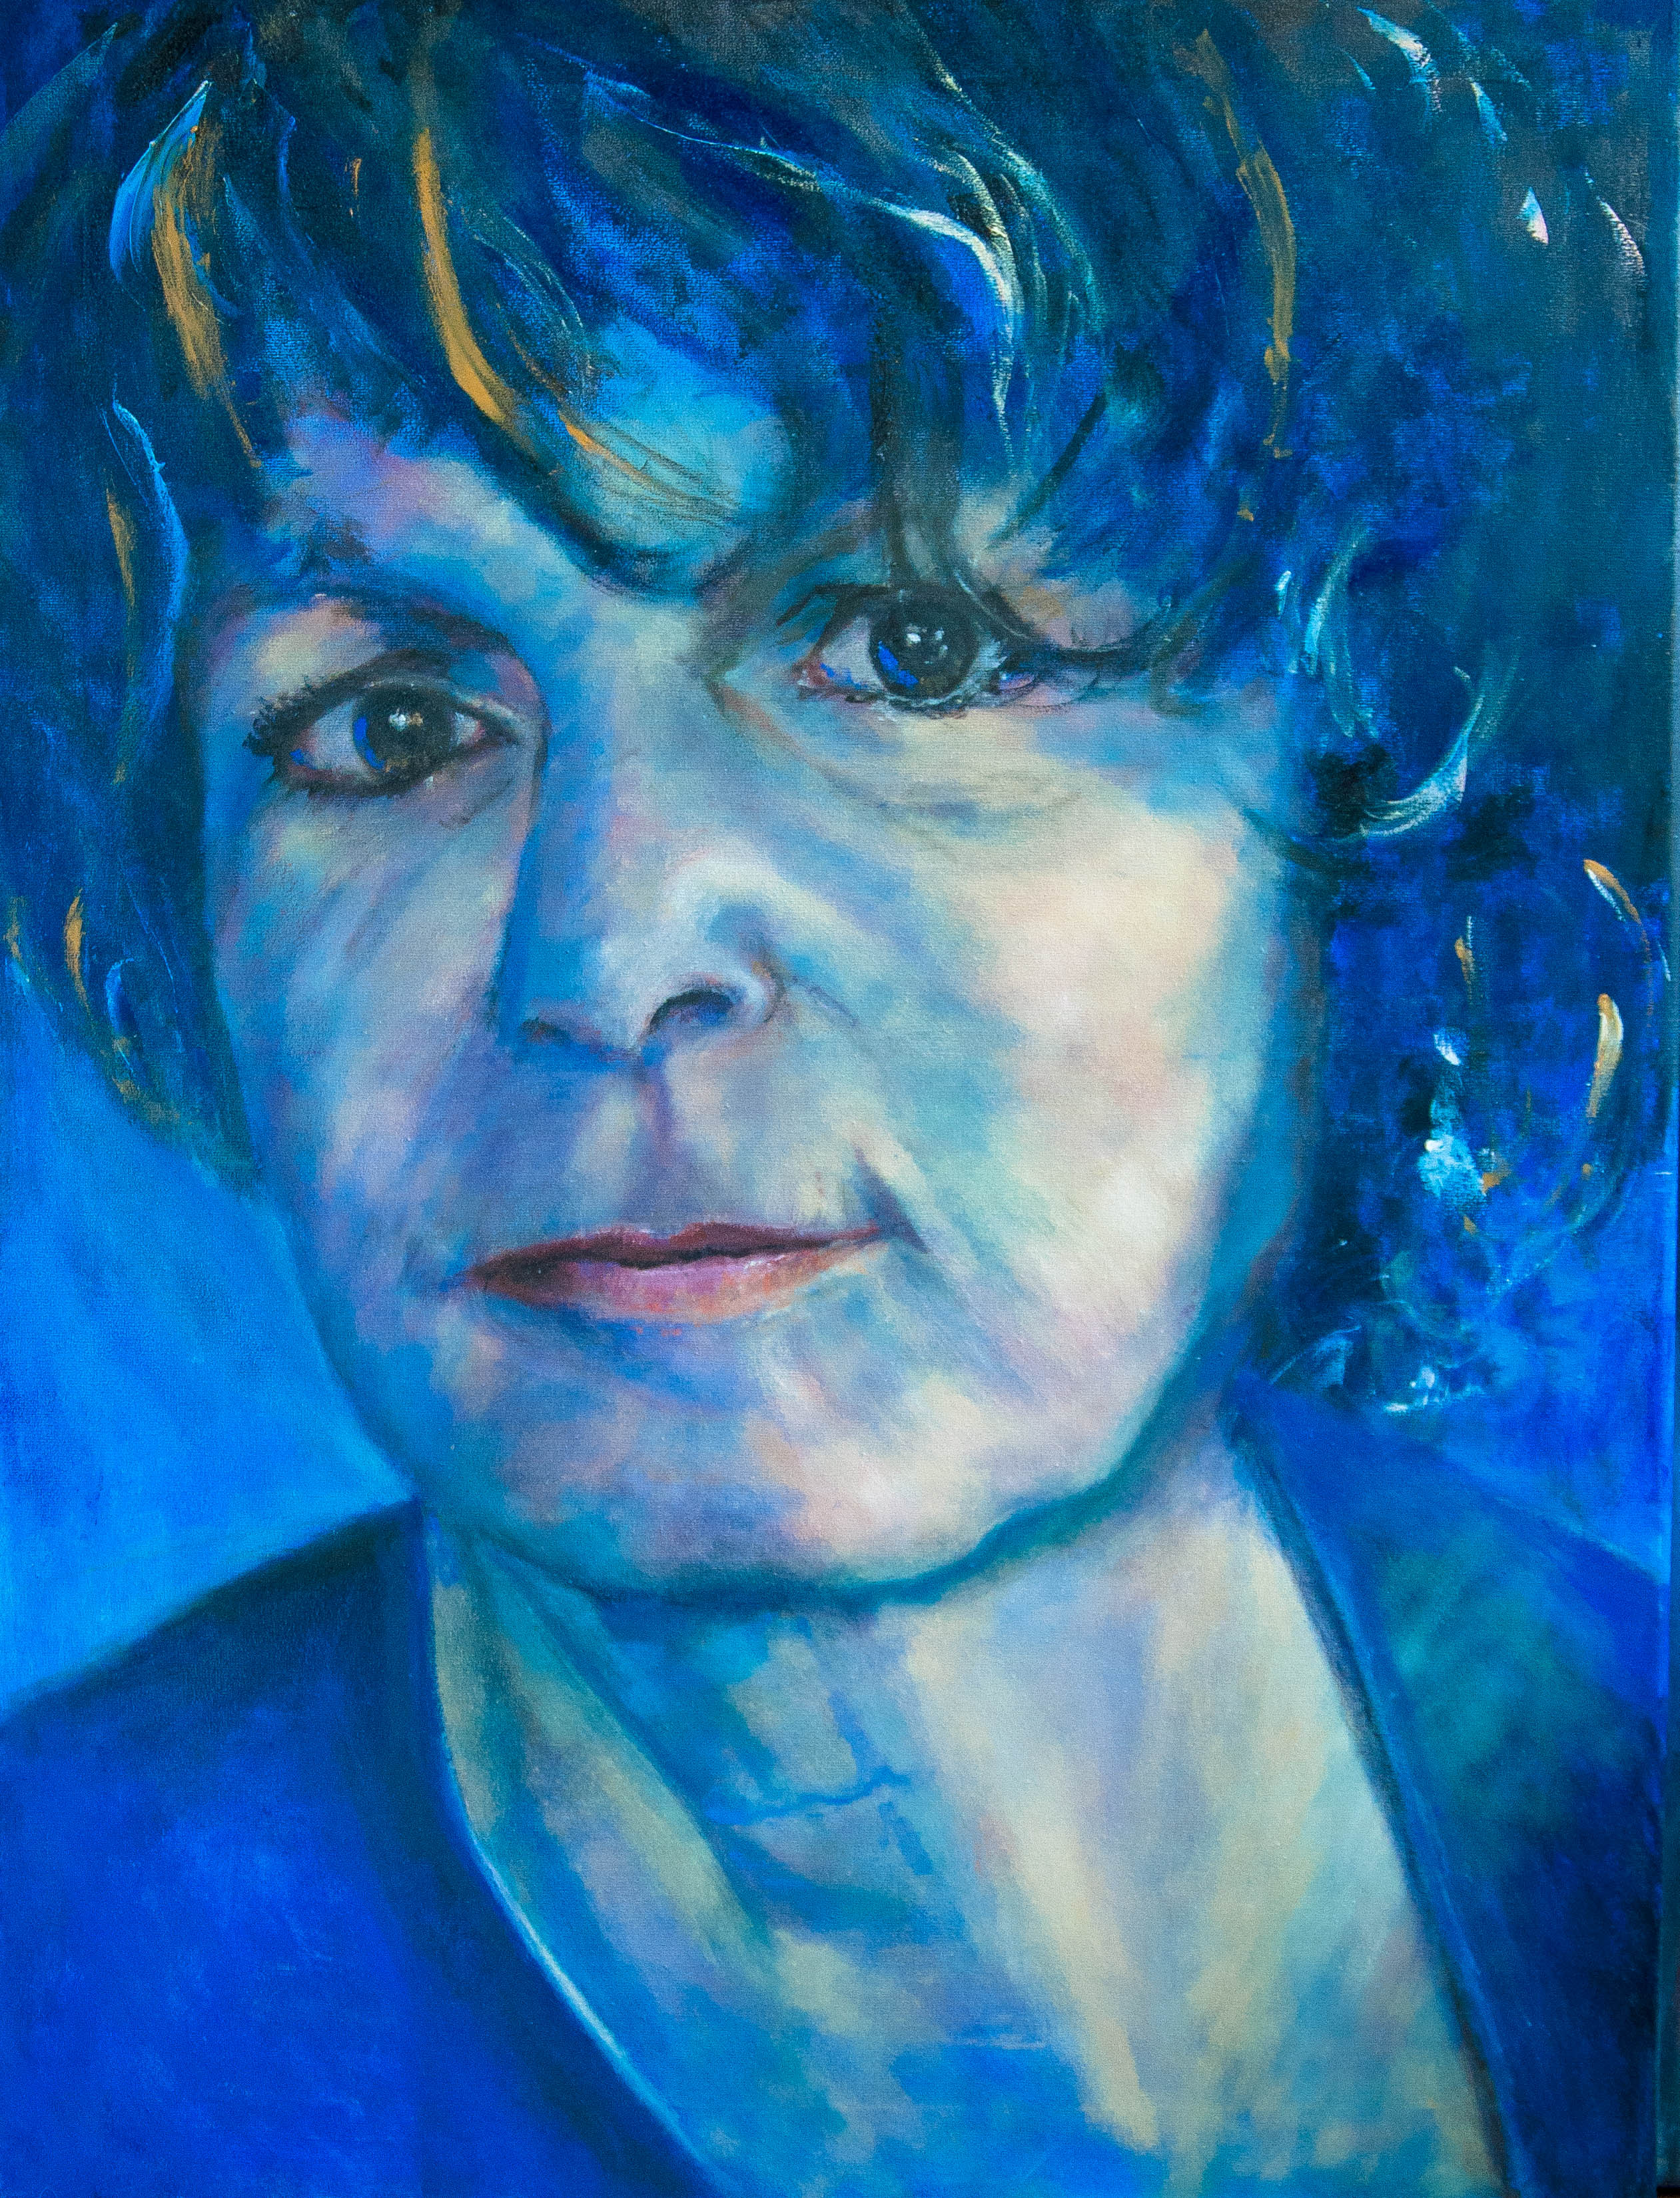 Painting Elise's blue mind (2020) Oilpainting on cotton, 80 x 60 x 4 cm Not available